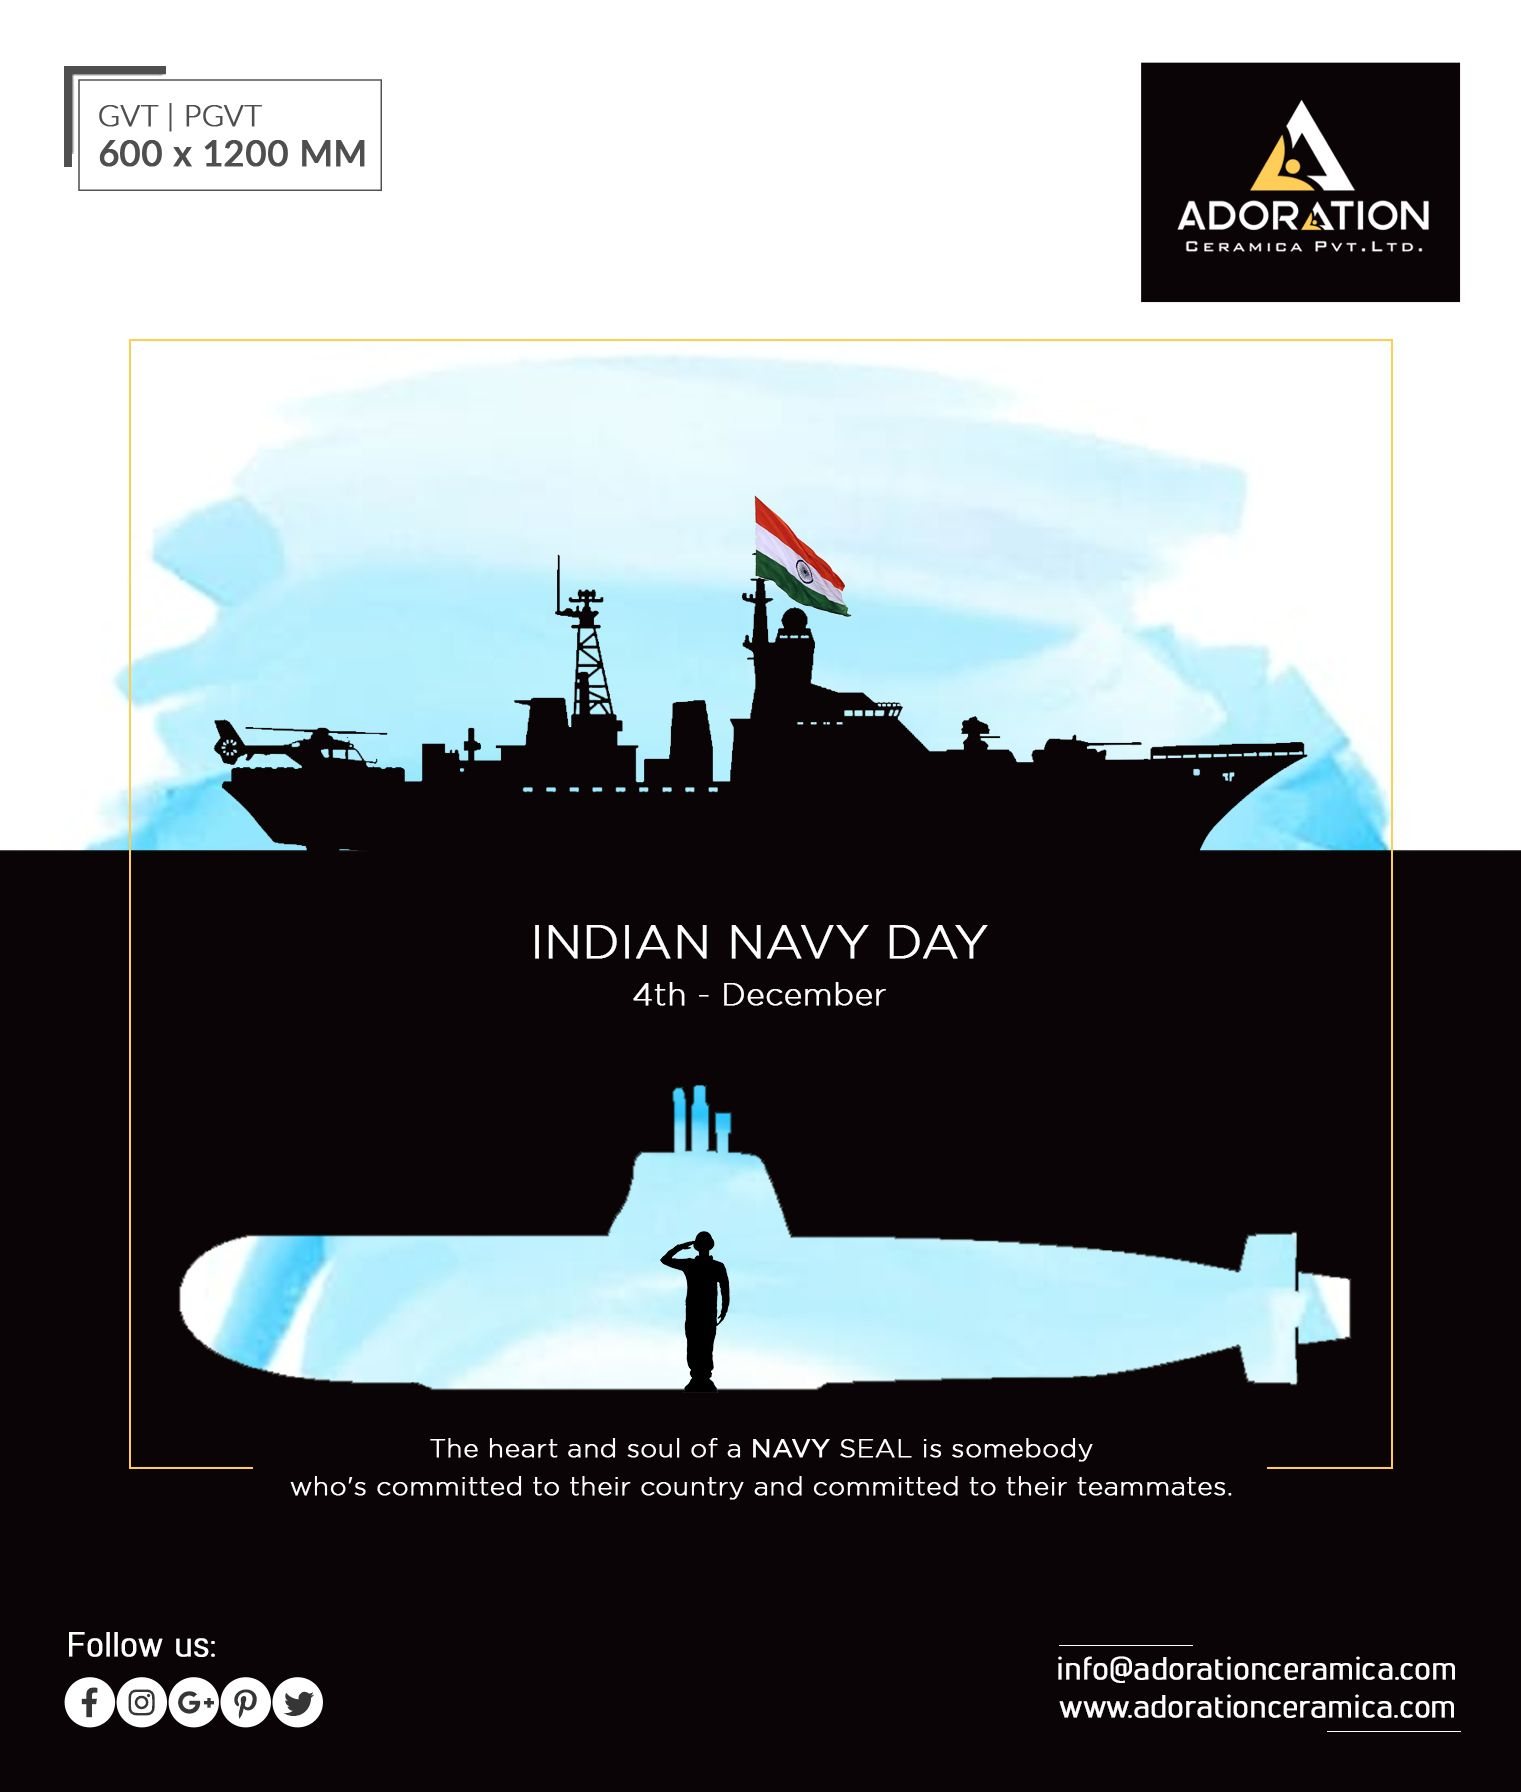 Pin By Anitha Deshamudre On Marketing Indian Navy Day Navy Day Indian Navy